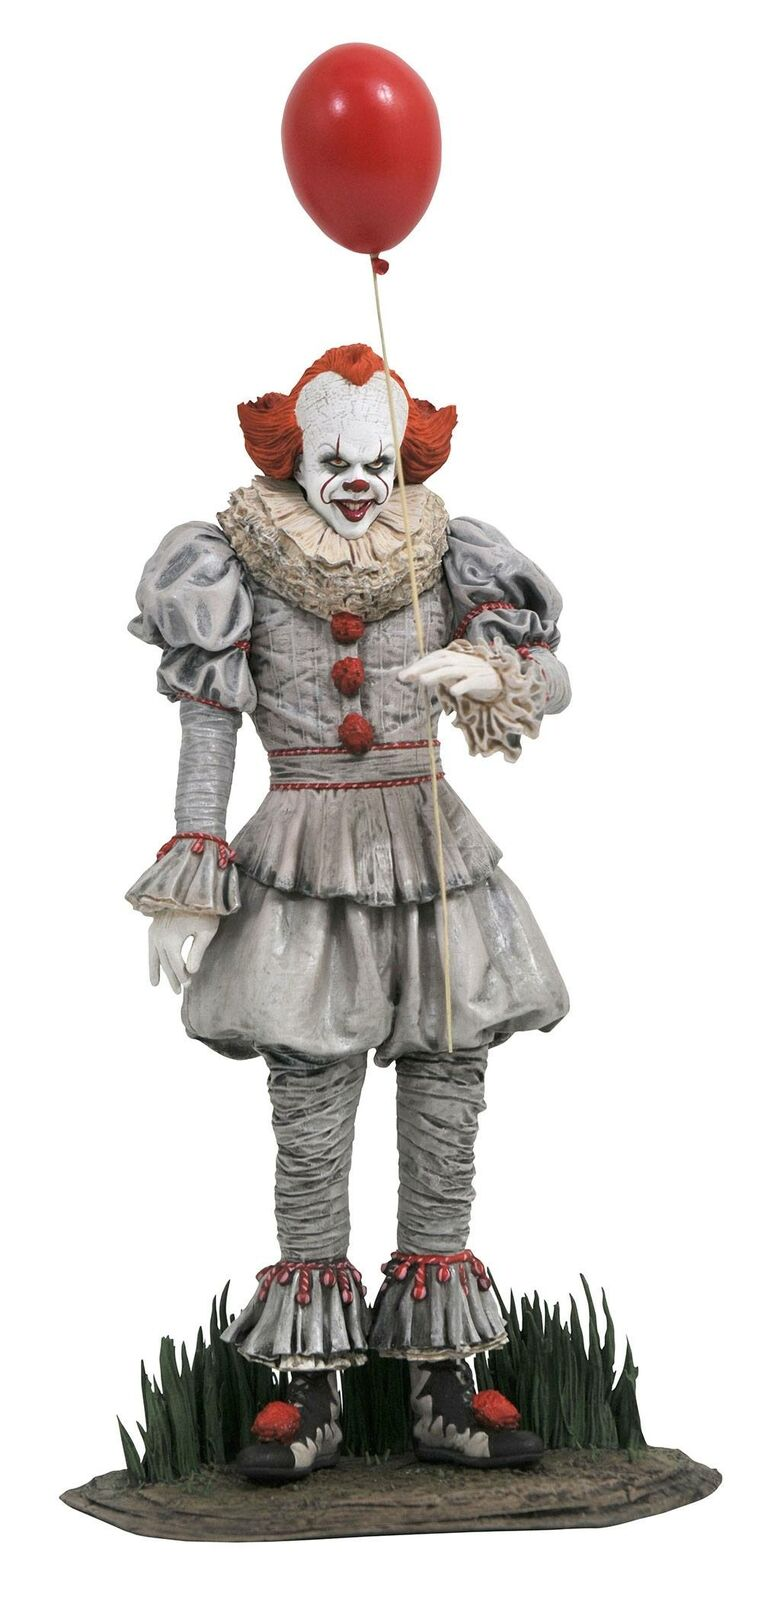 IT Pennywise capitolo 2 cifra in PVC